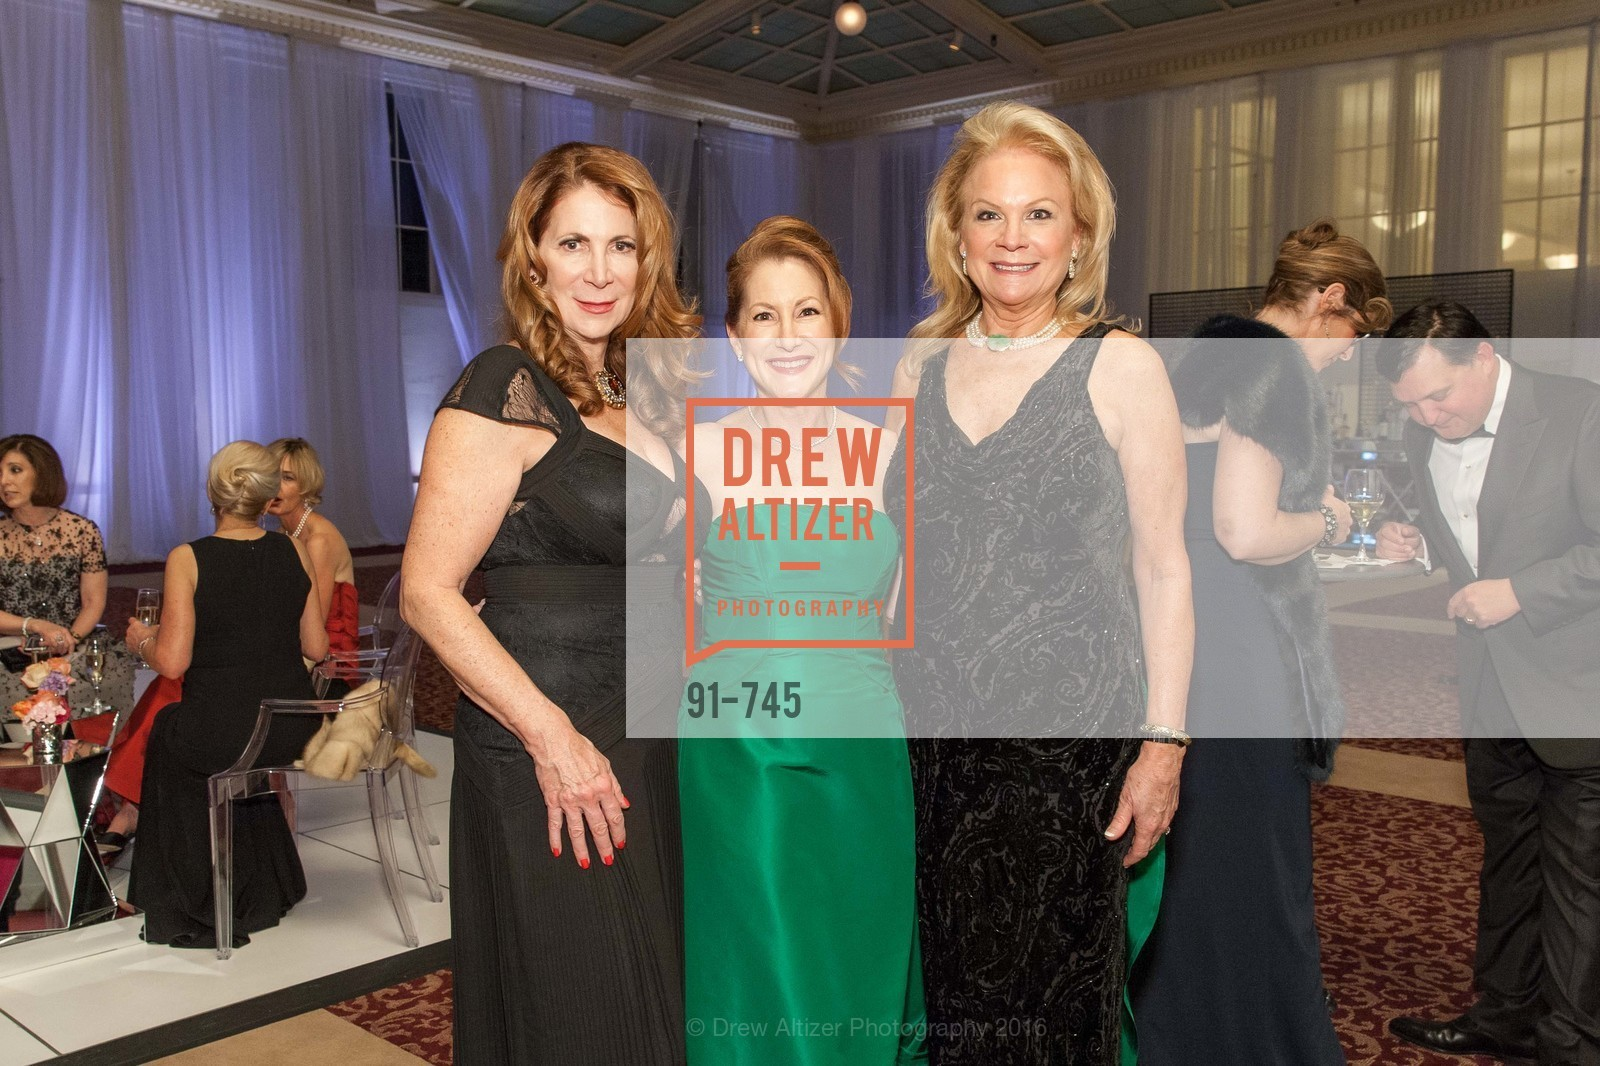 Patricia Ferrin Loucks, Ave Seltsam, Claire Kostic, San Francisco Ballet 2016 Opening Night Gala Part 2, San Francisco City Hall, January 21st, 2016,Drew Altizer, Drew Altizer Photography, full-service agency, private events, San Francisco photographer, photographer california